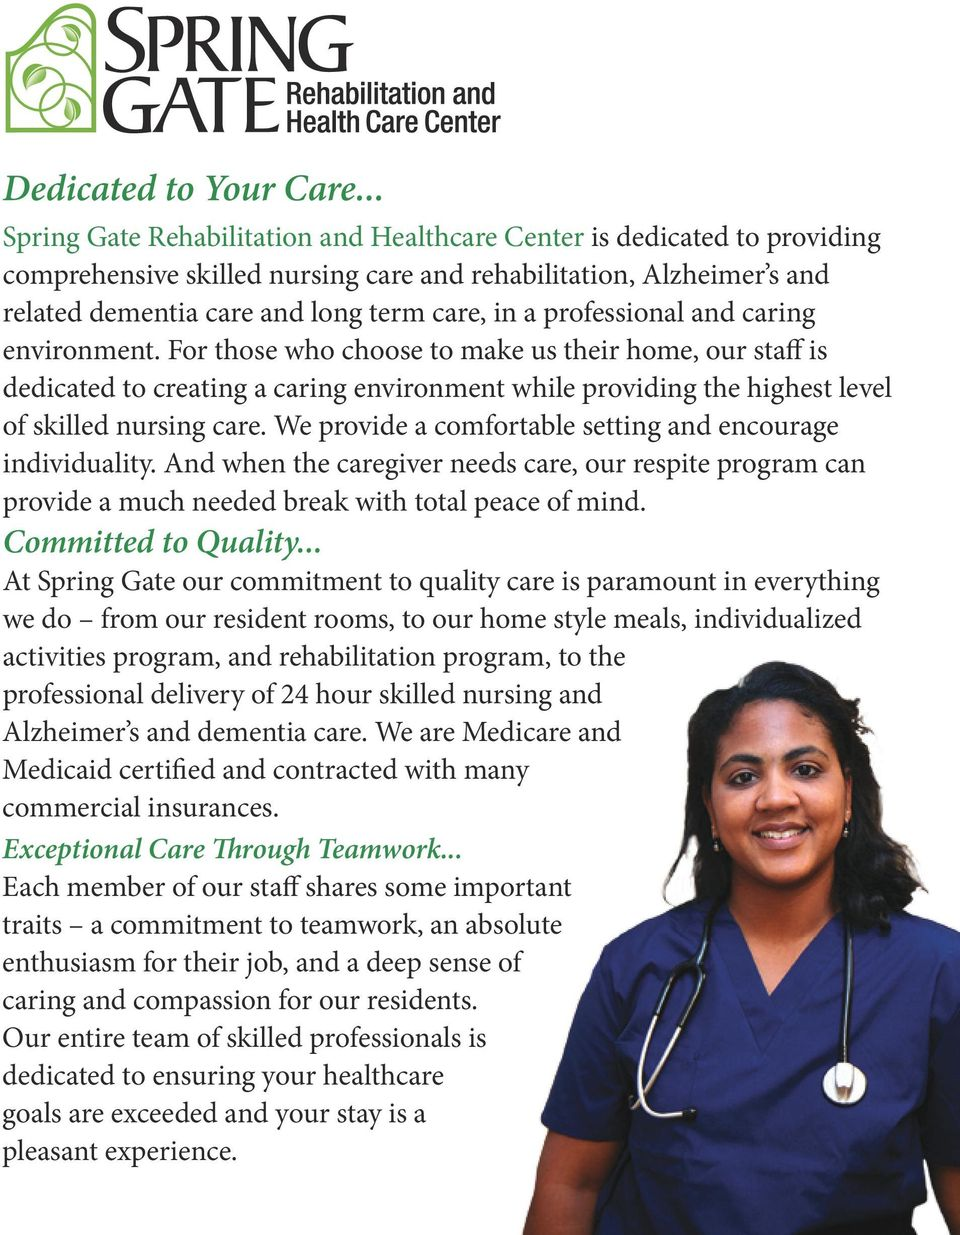 professional and caring environment. For those who choose to make us their home, our staff is dedicated to creating a caring environment while providing the highest level of skilled nursing care.